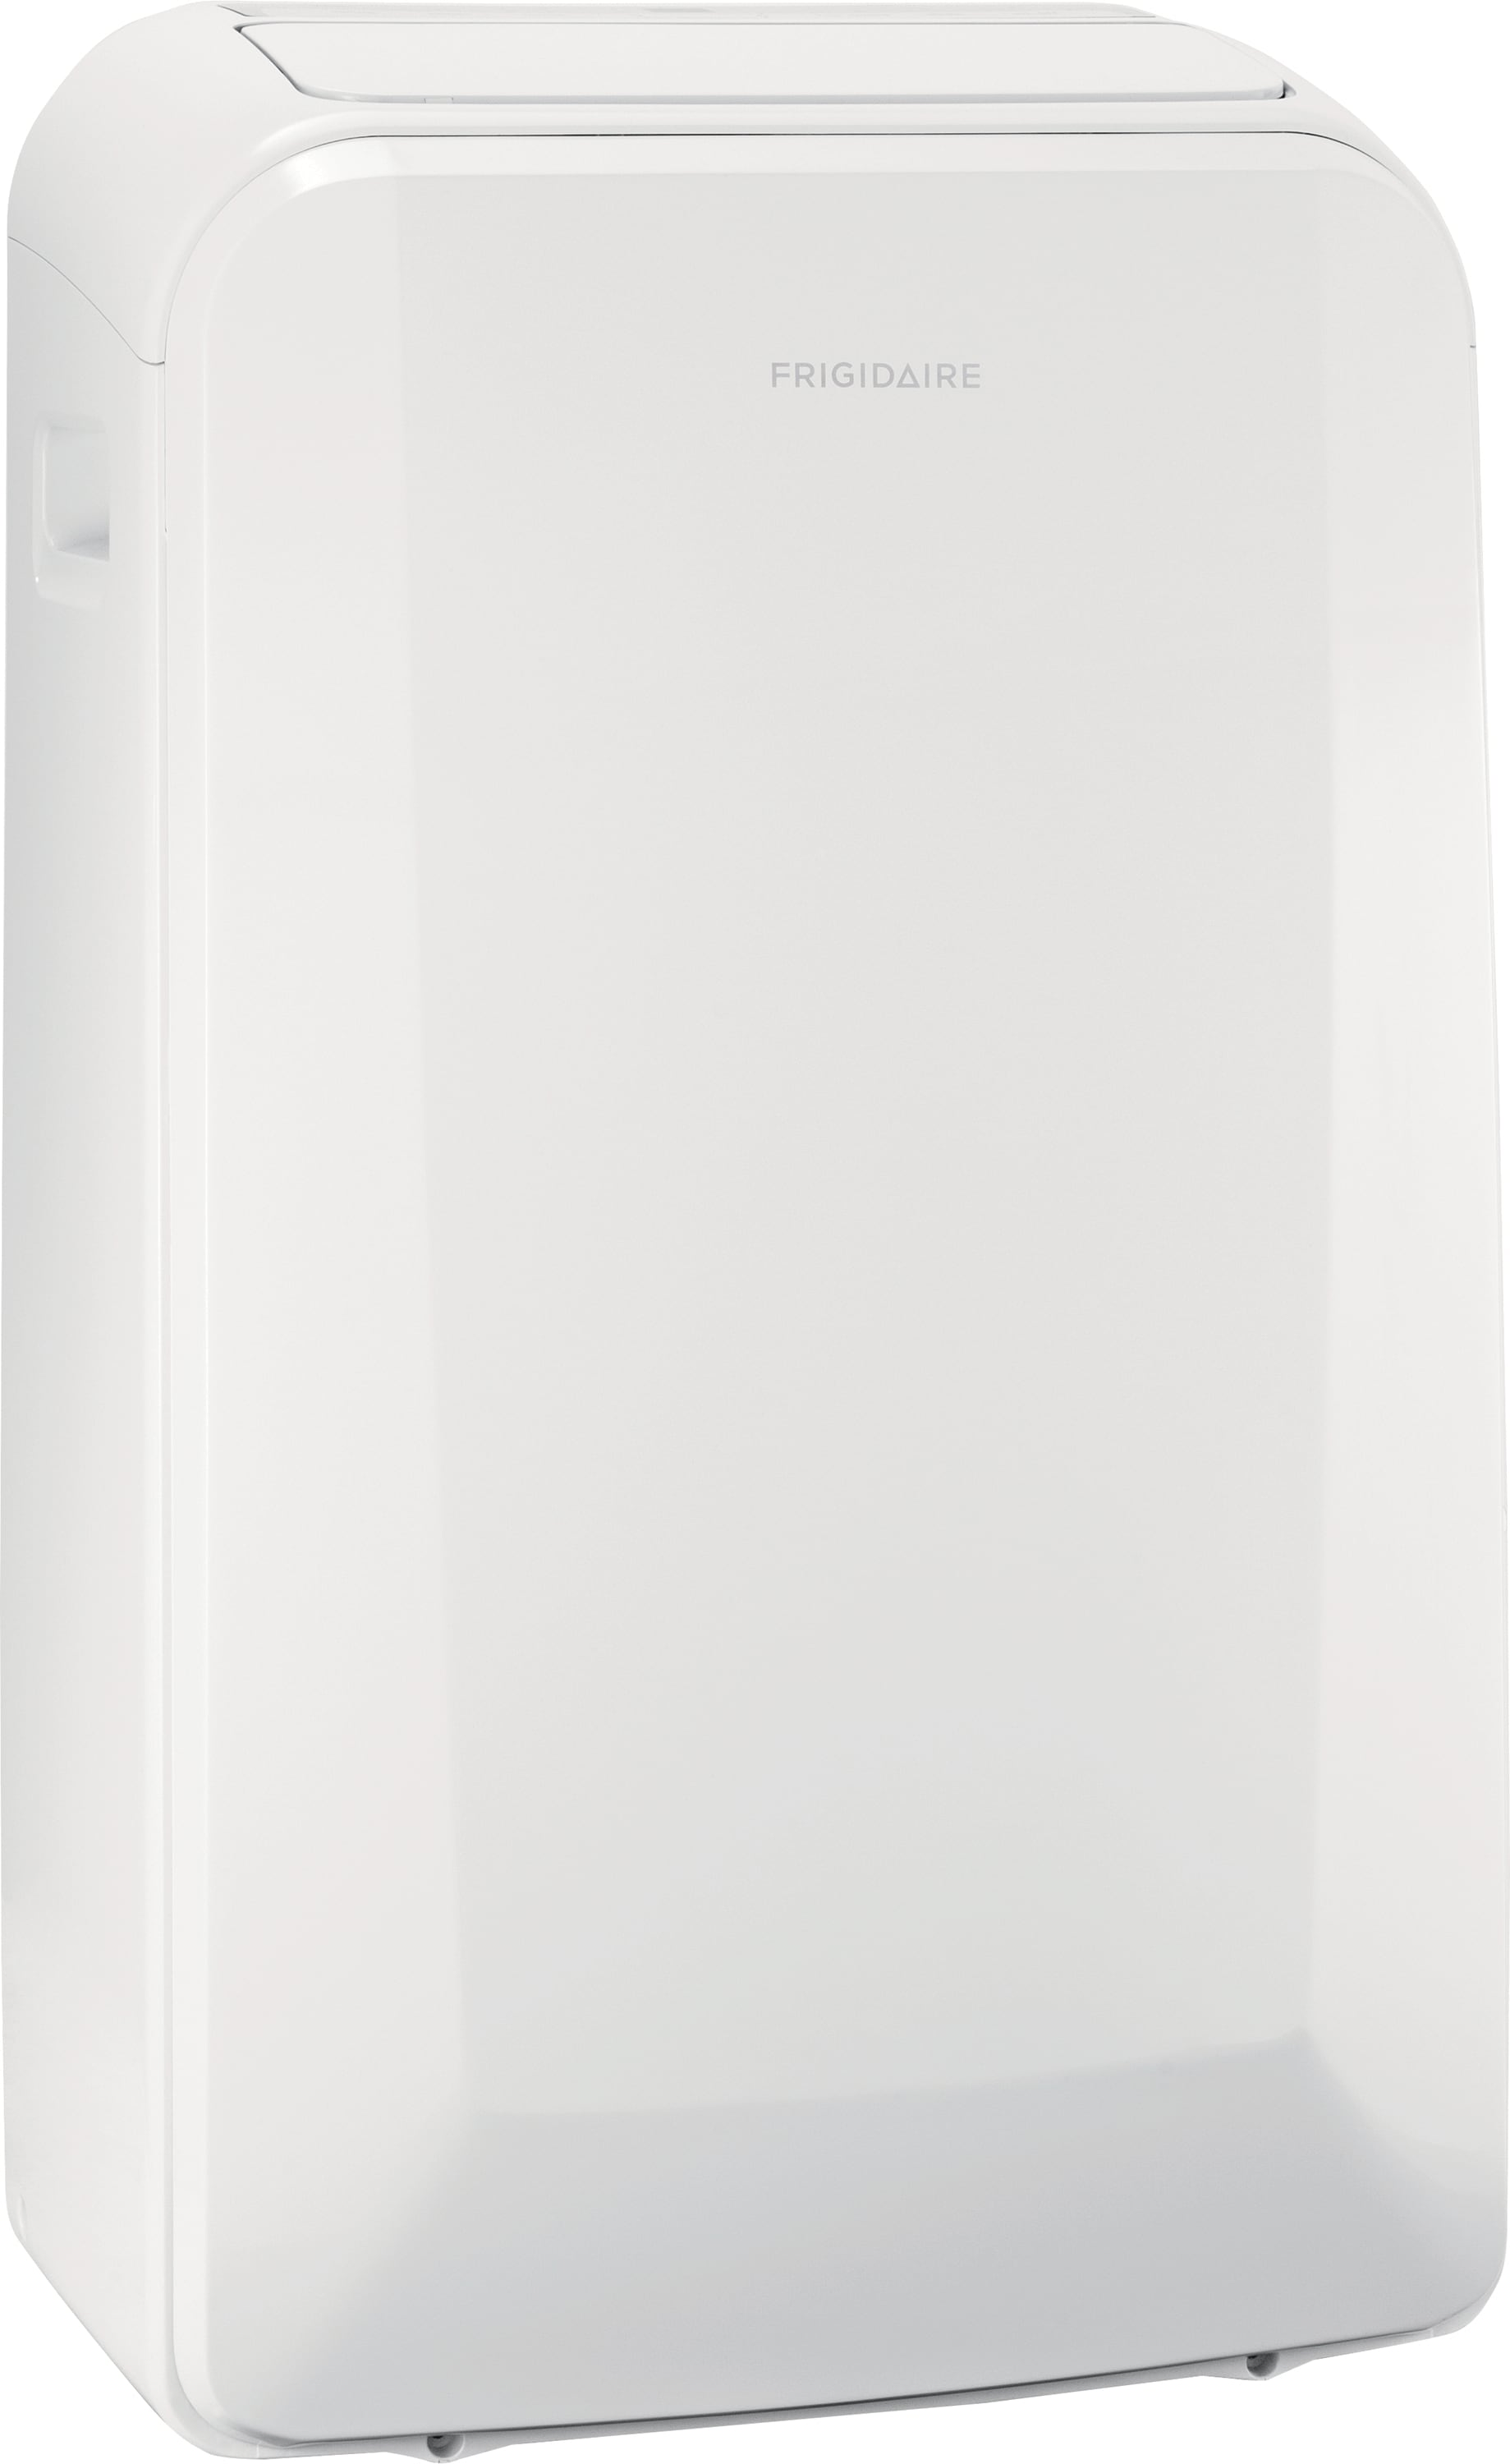 Model: FFPH1422R1 | 14,000 BTU Portable Room Air Conditioner with Supplemental Heat